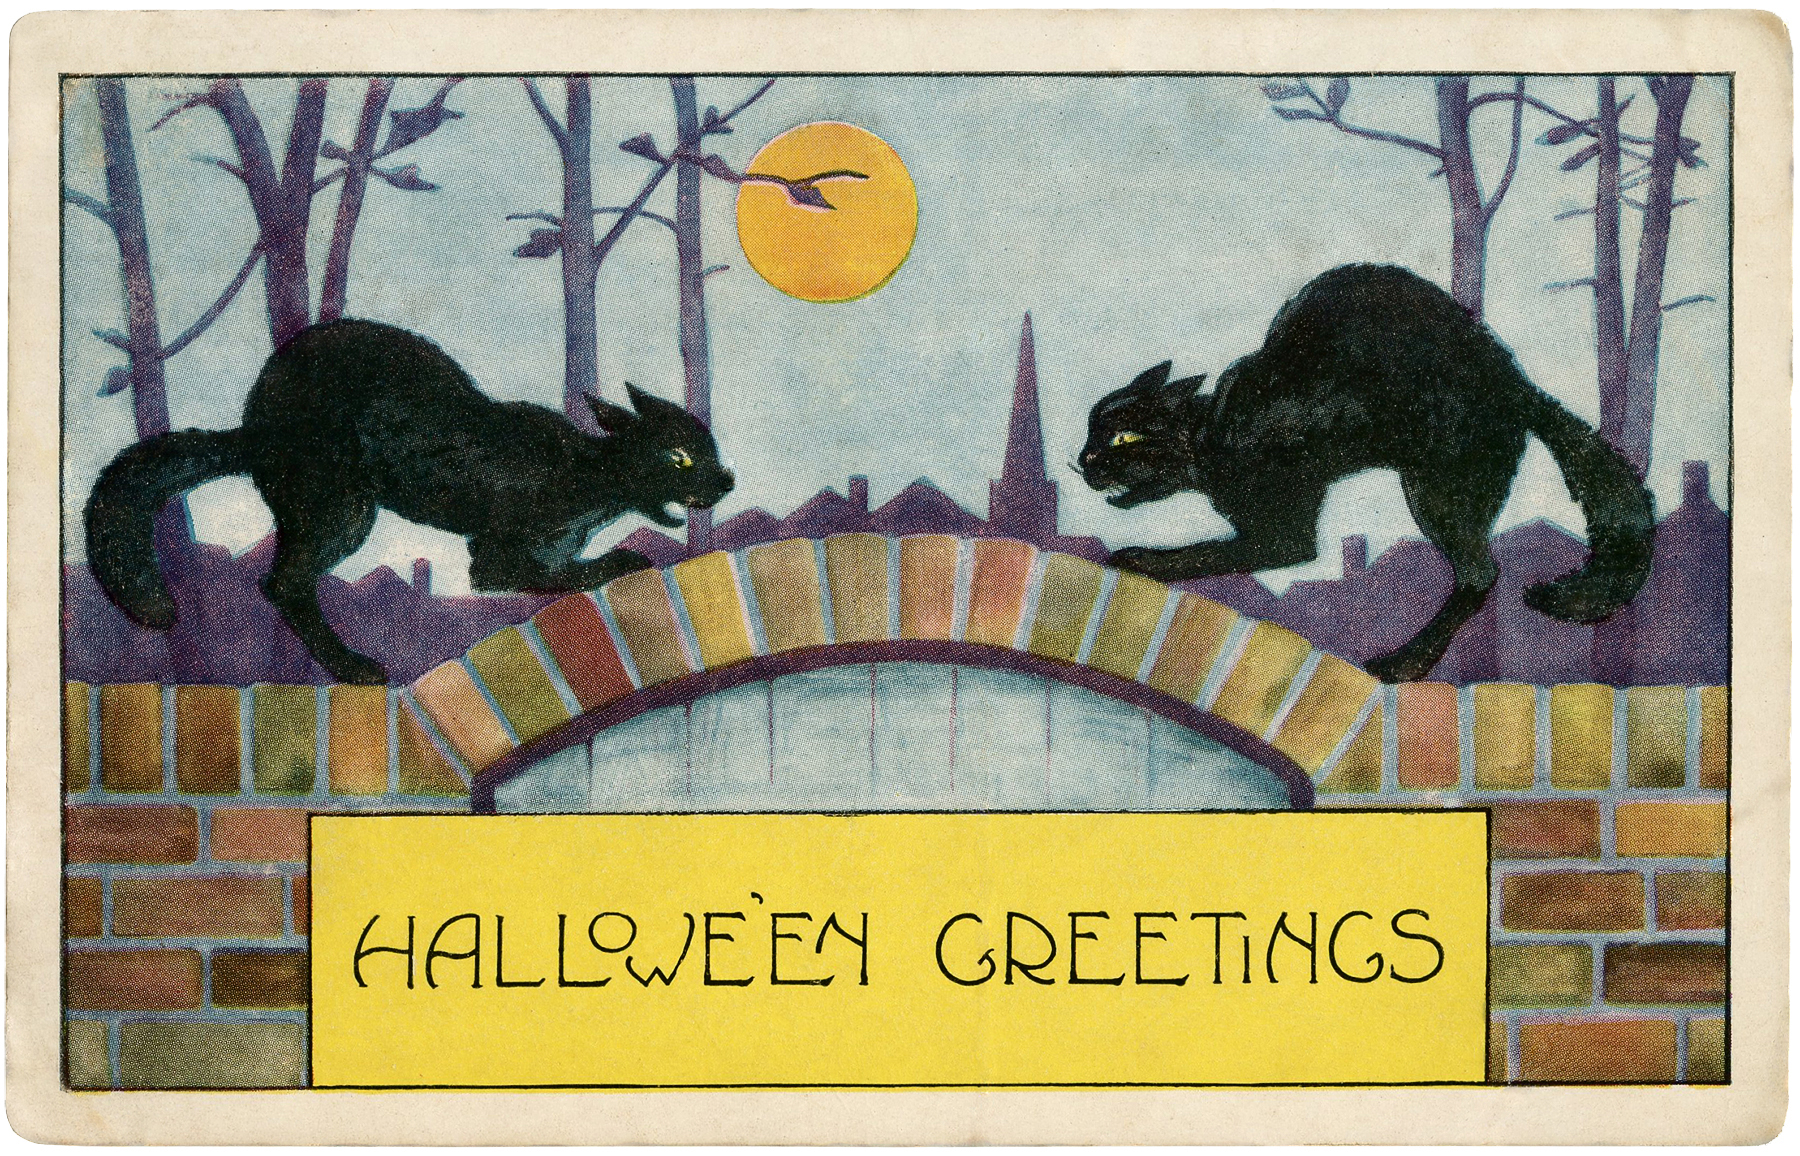 free halloween black cats image the graphics fairy. Black Bedroom Furniture Sets. Home Design Ideas